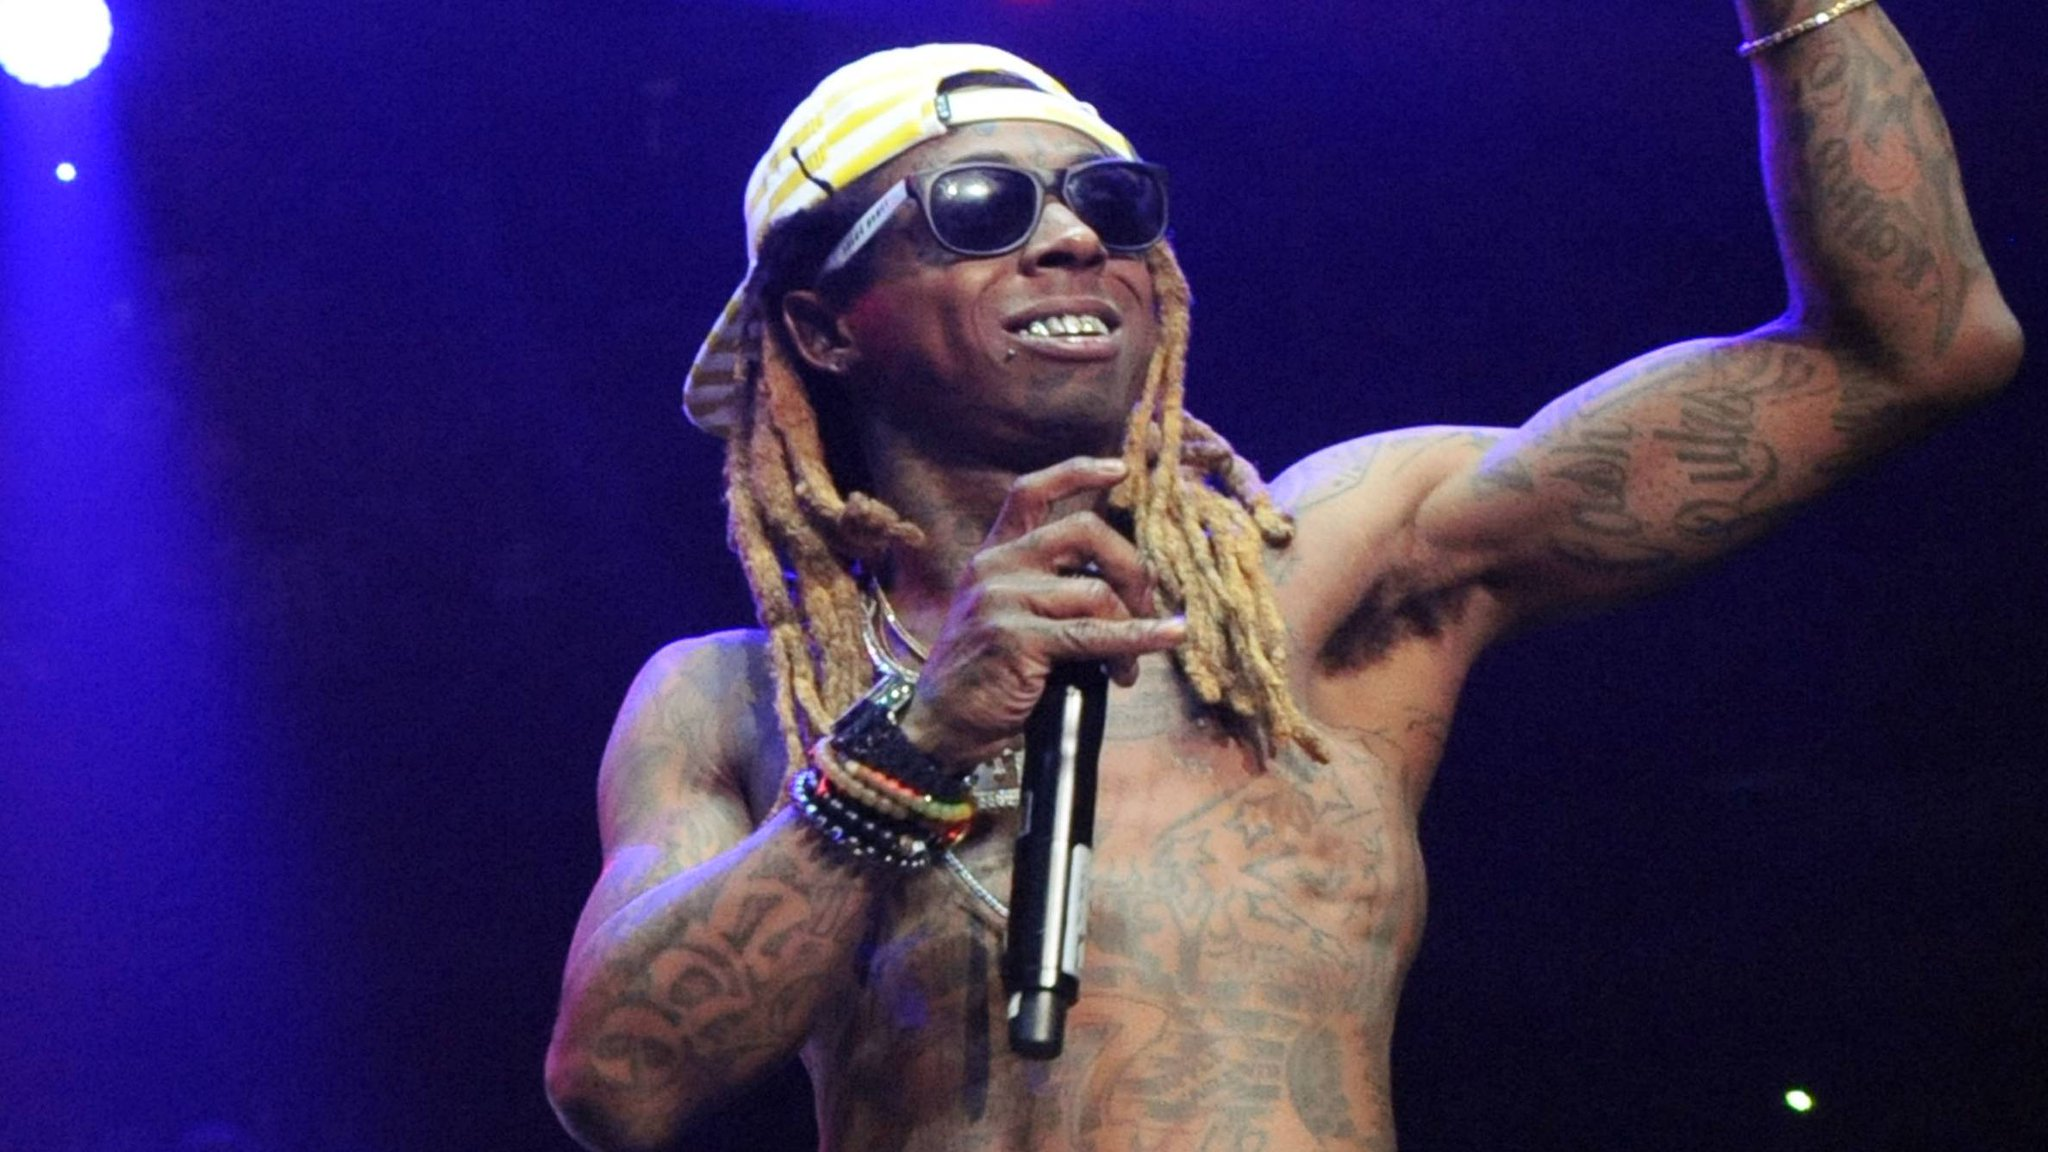 Lil Wayne dives into house music on his latest song 'Like A Man.' https://t.co/z4SqvyuOpU https://t.co/e9TBXsVCk1